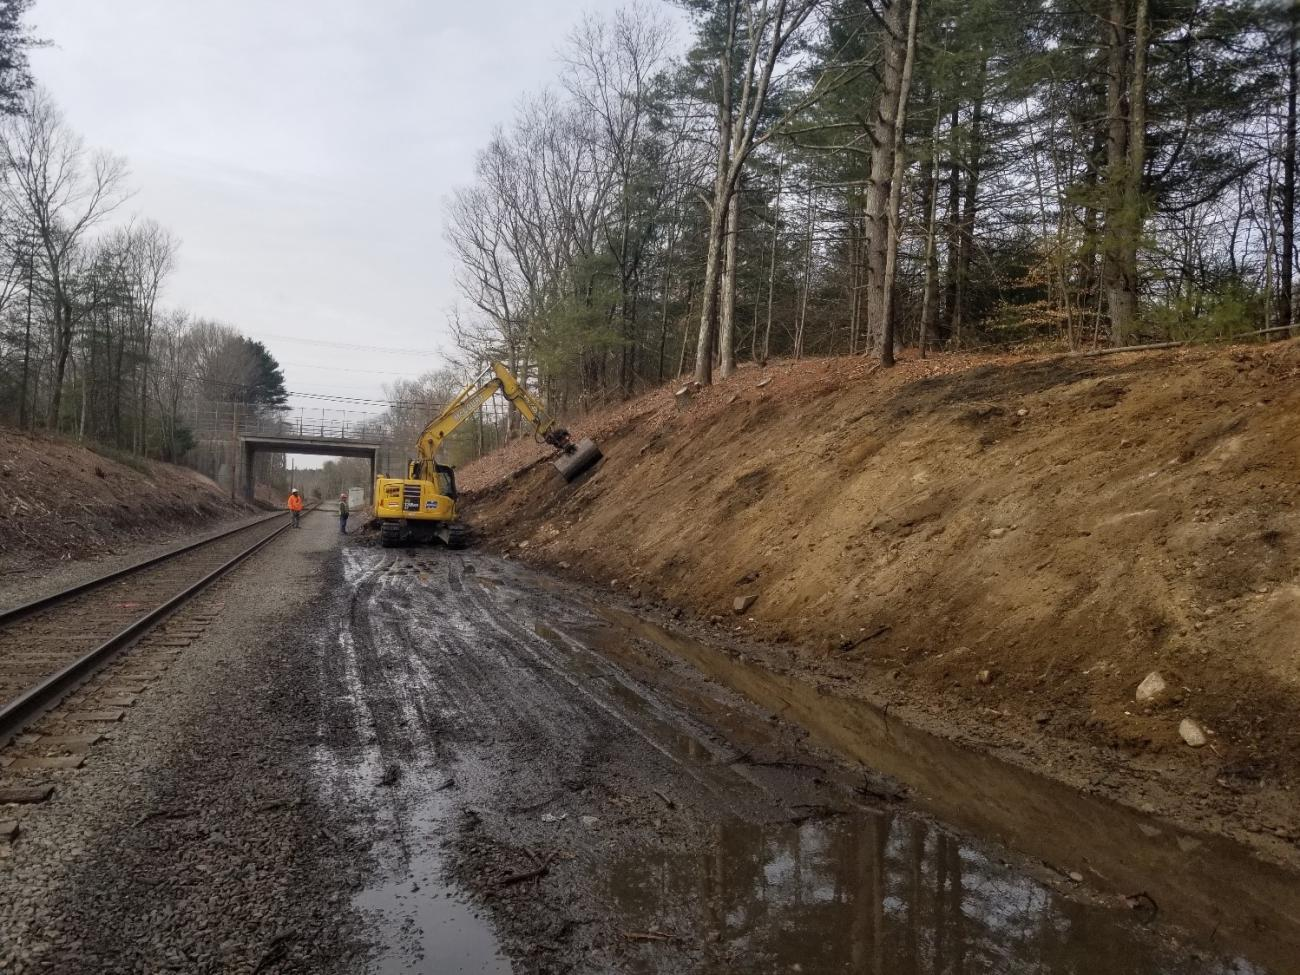 The area around the track is excavated to make room for new track as Phase 2 of the Franklin Double Track project begins (February 2020)